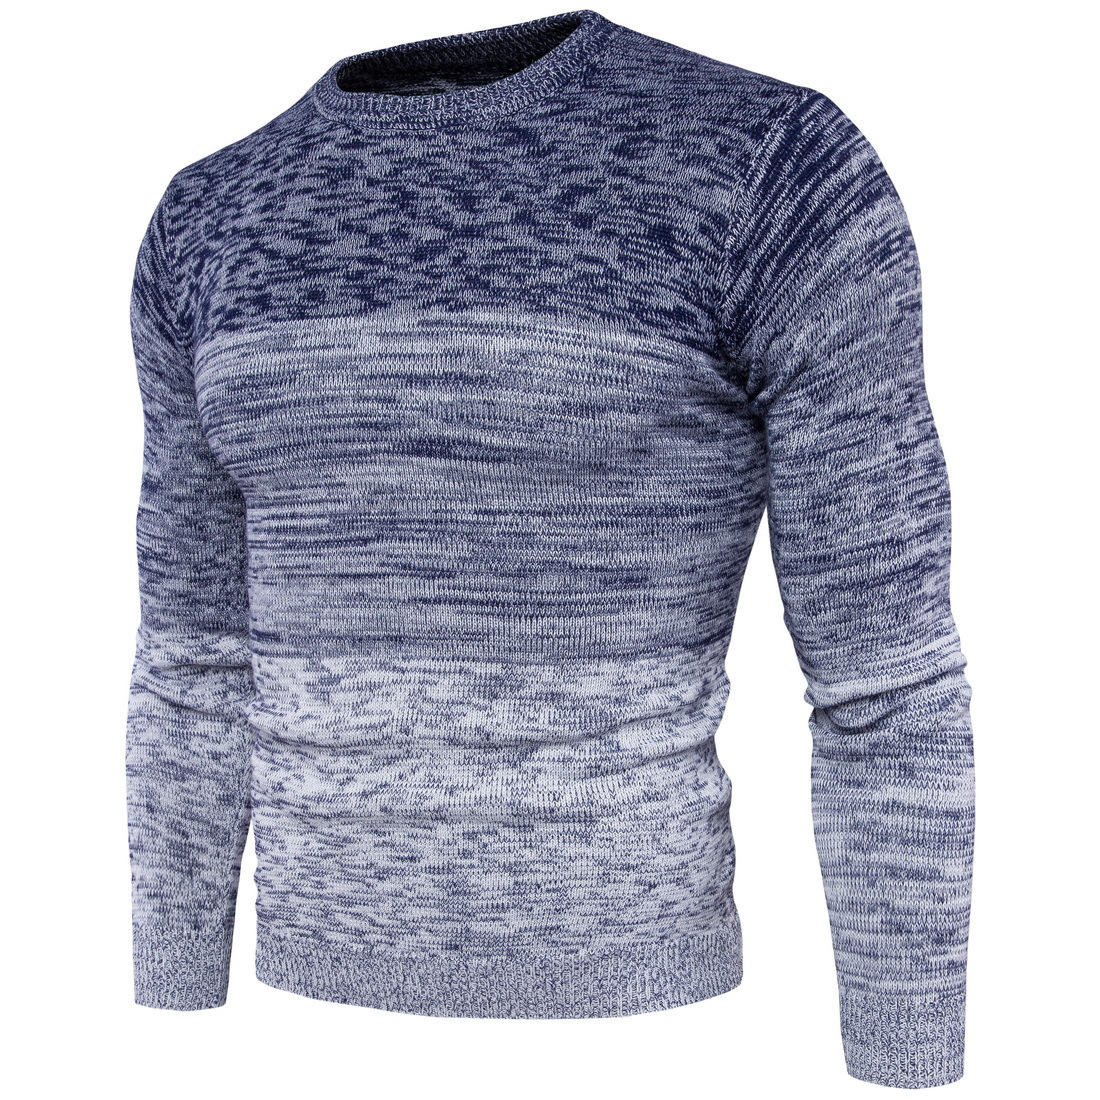 2019 Autumn Winter New Men Gradient Color Sweater Fashion Male Cotton O-neck Long Sleeve Sweater Male